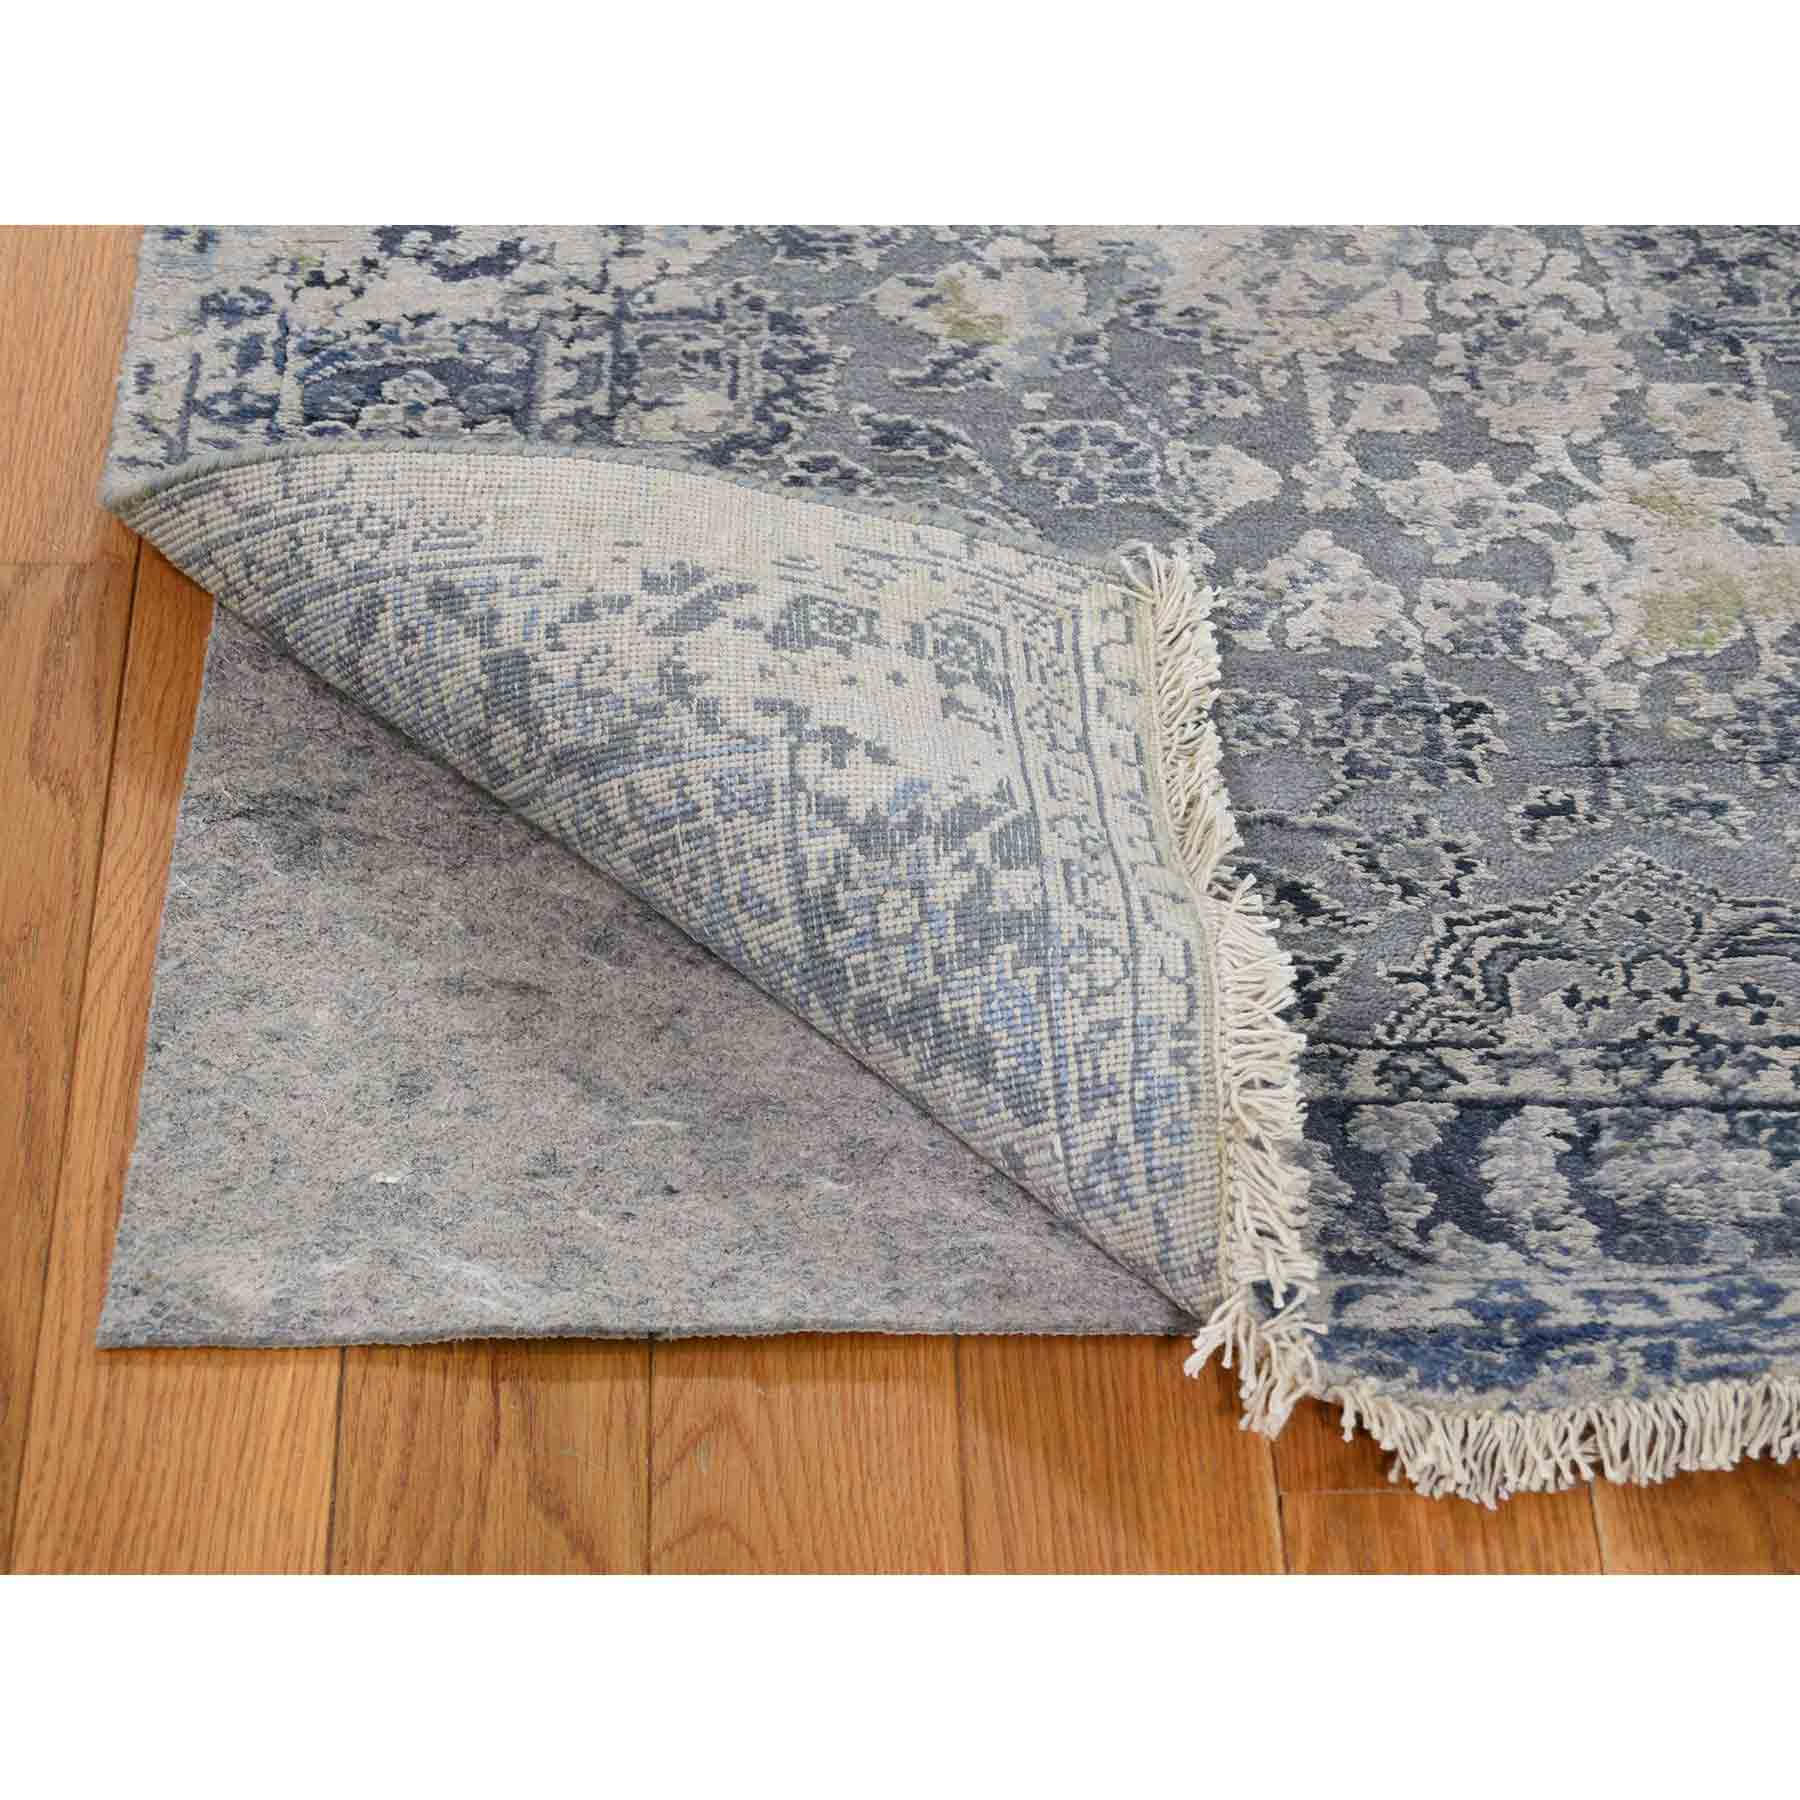 Transitional-Hand-Knotted-Rug-231635